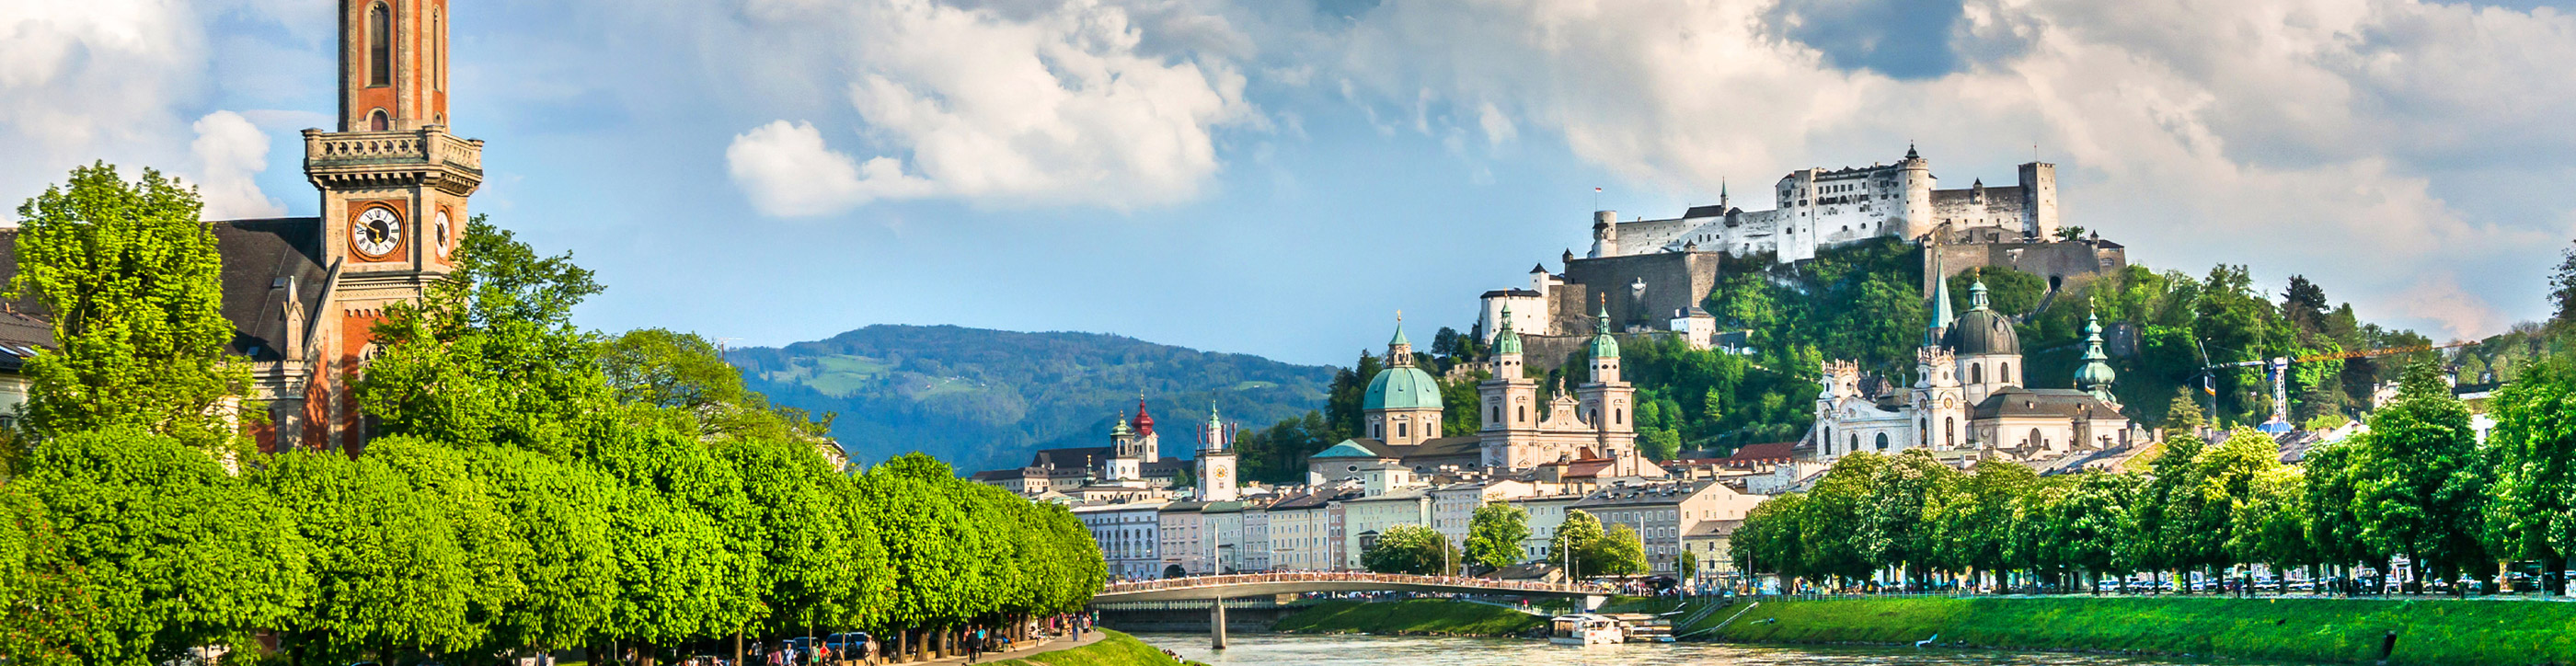 S.S. Maria Theresa Exterior Budapest